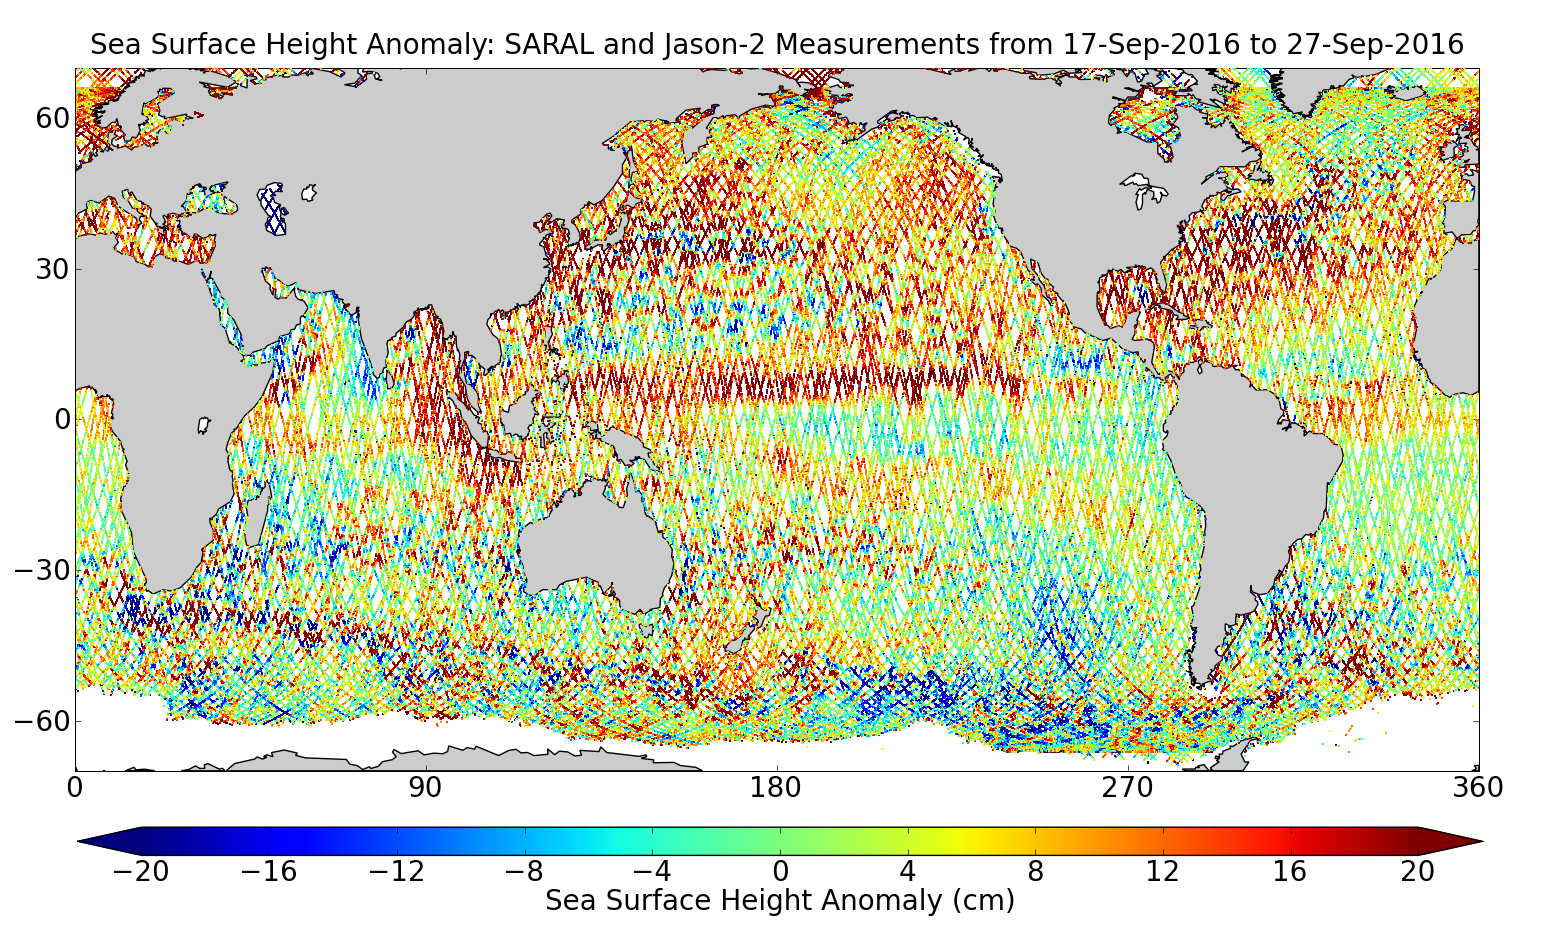 Sea Surface Height Anomaly: SARAL and Jason-2 Measurements from 17-Sep-2016 to 27-Sep-2016